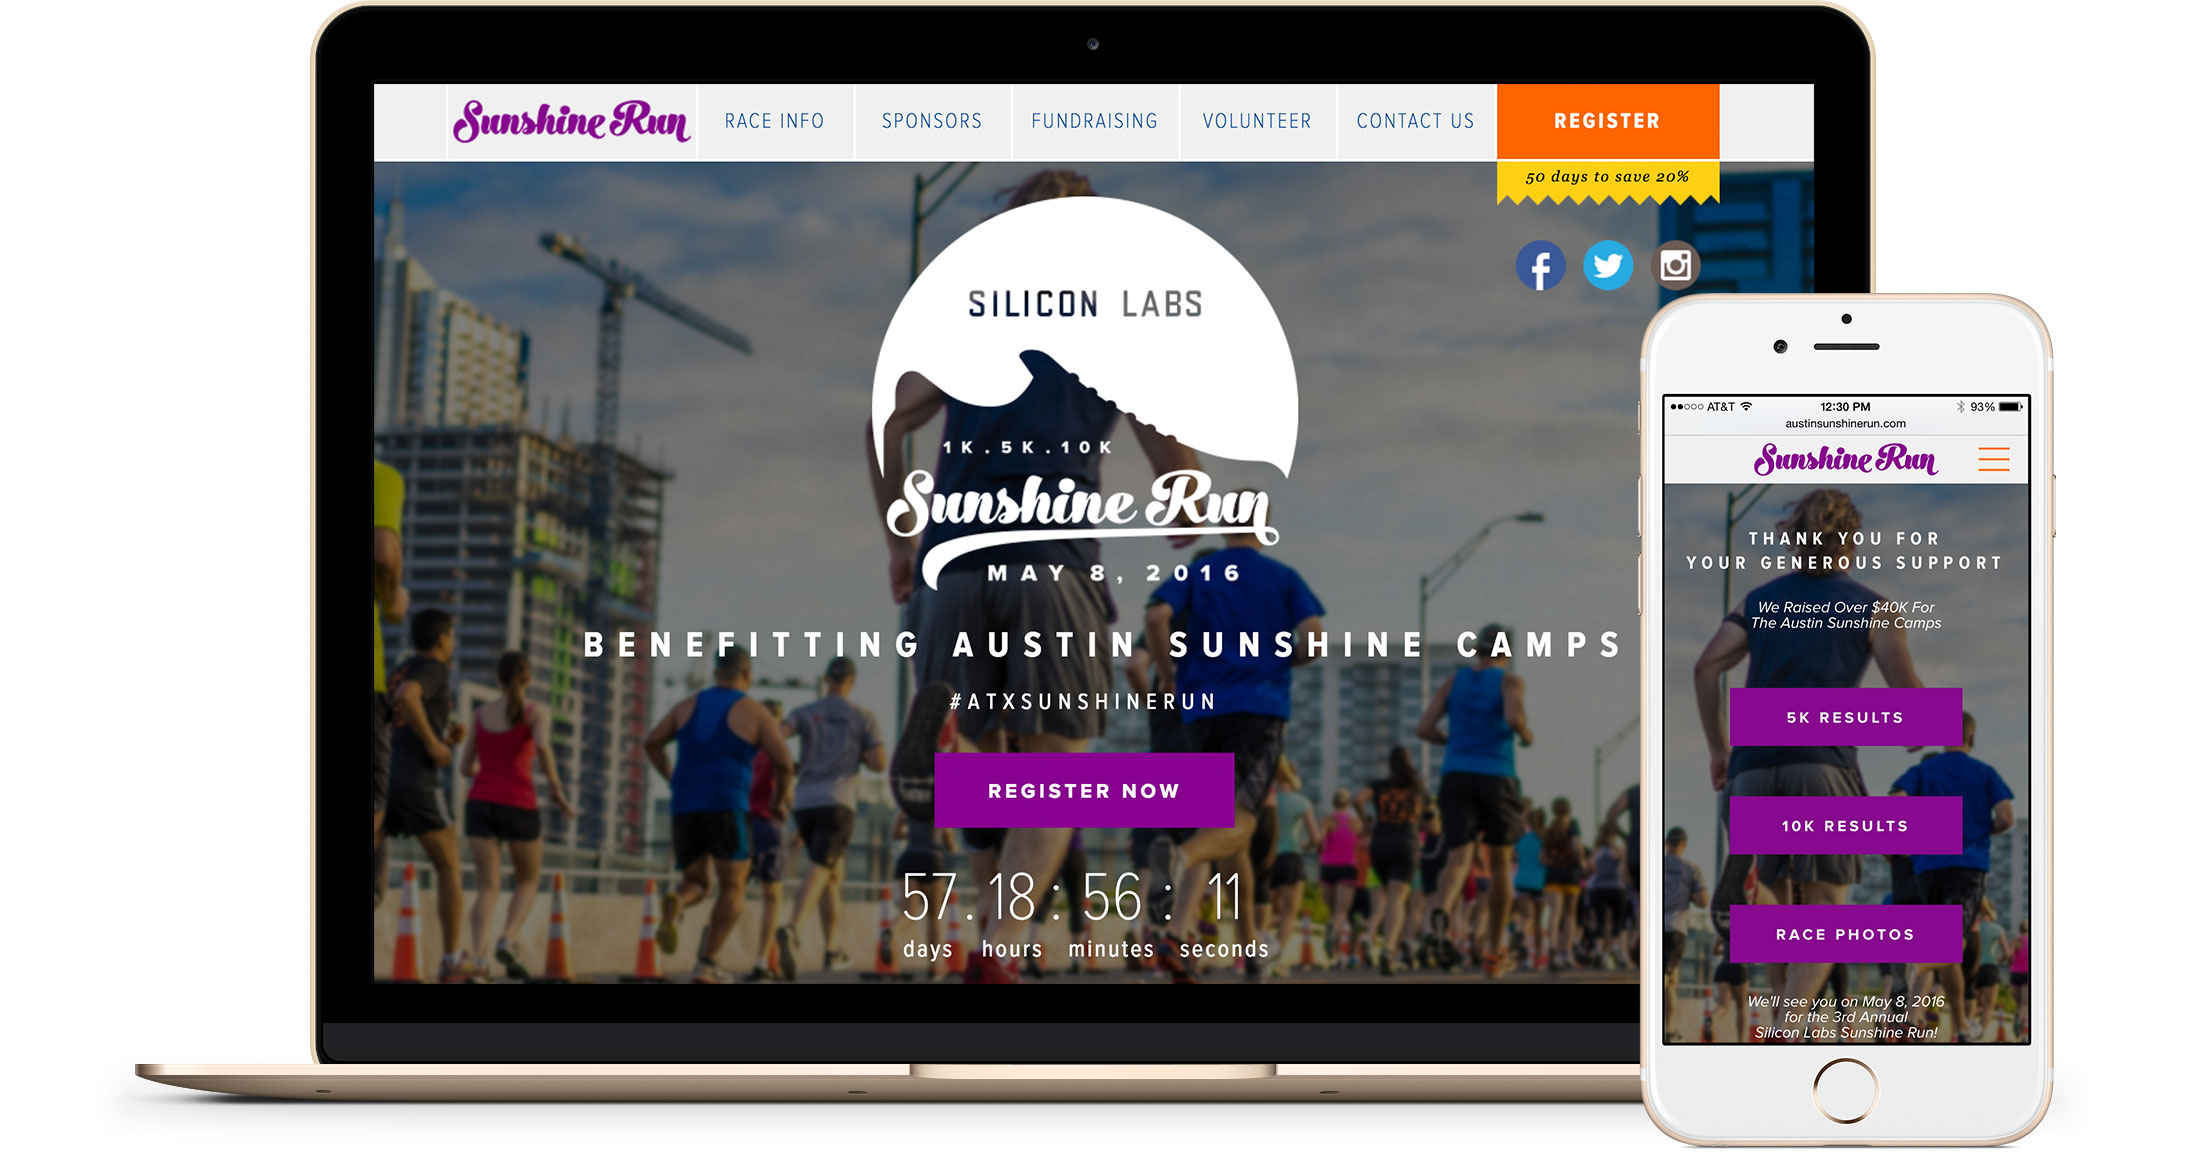 Sunshine Run Mobile Responsive Website Design